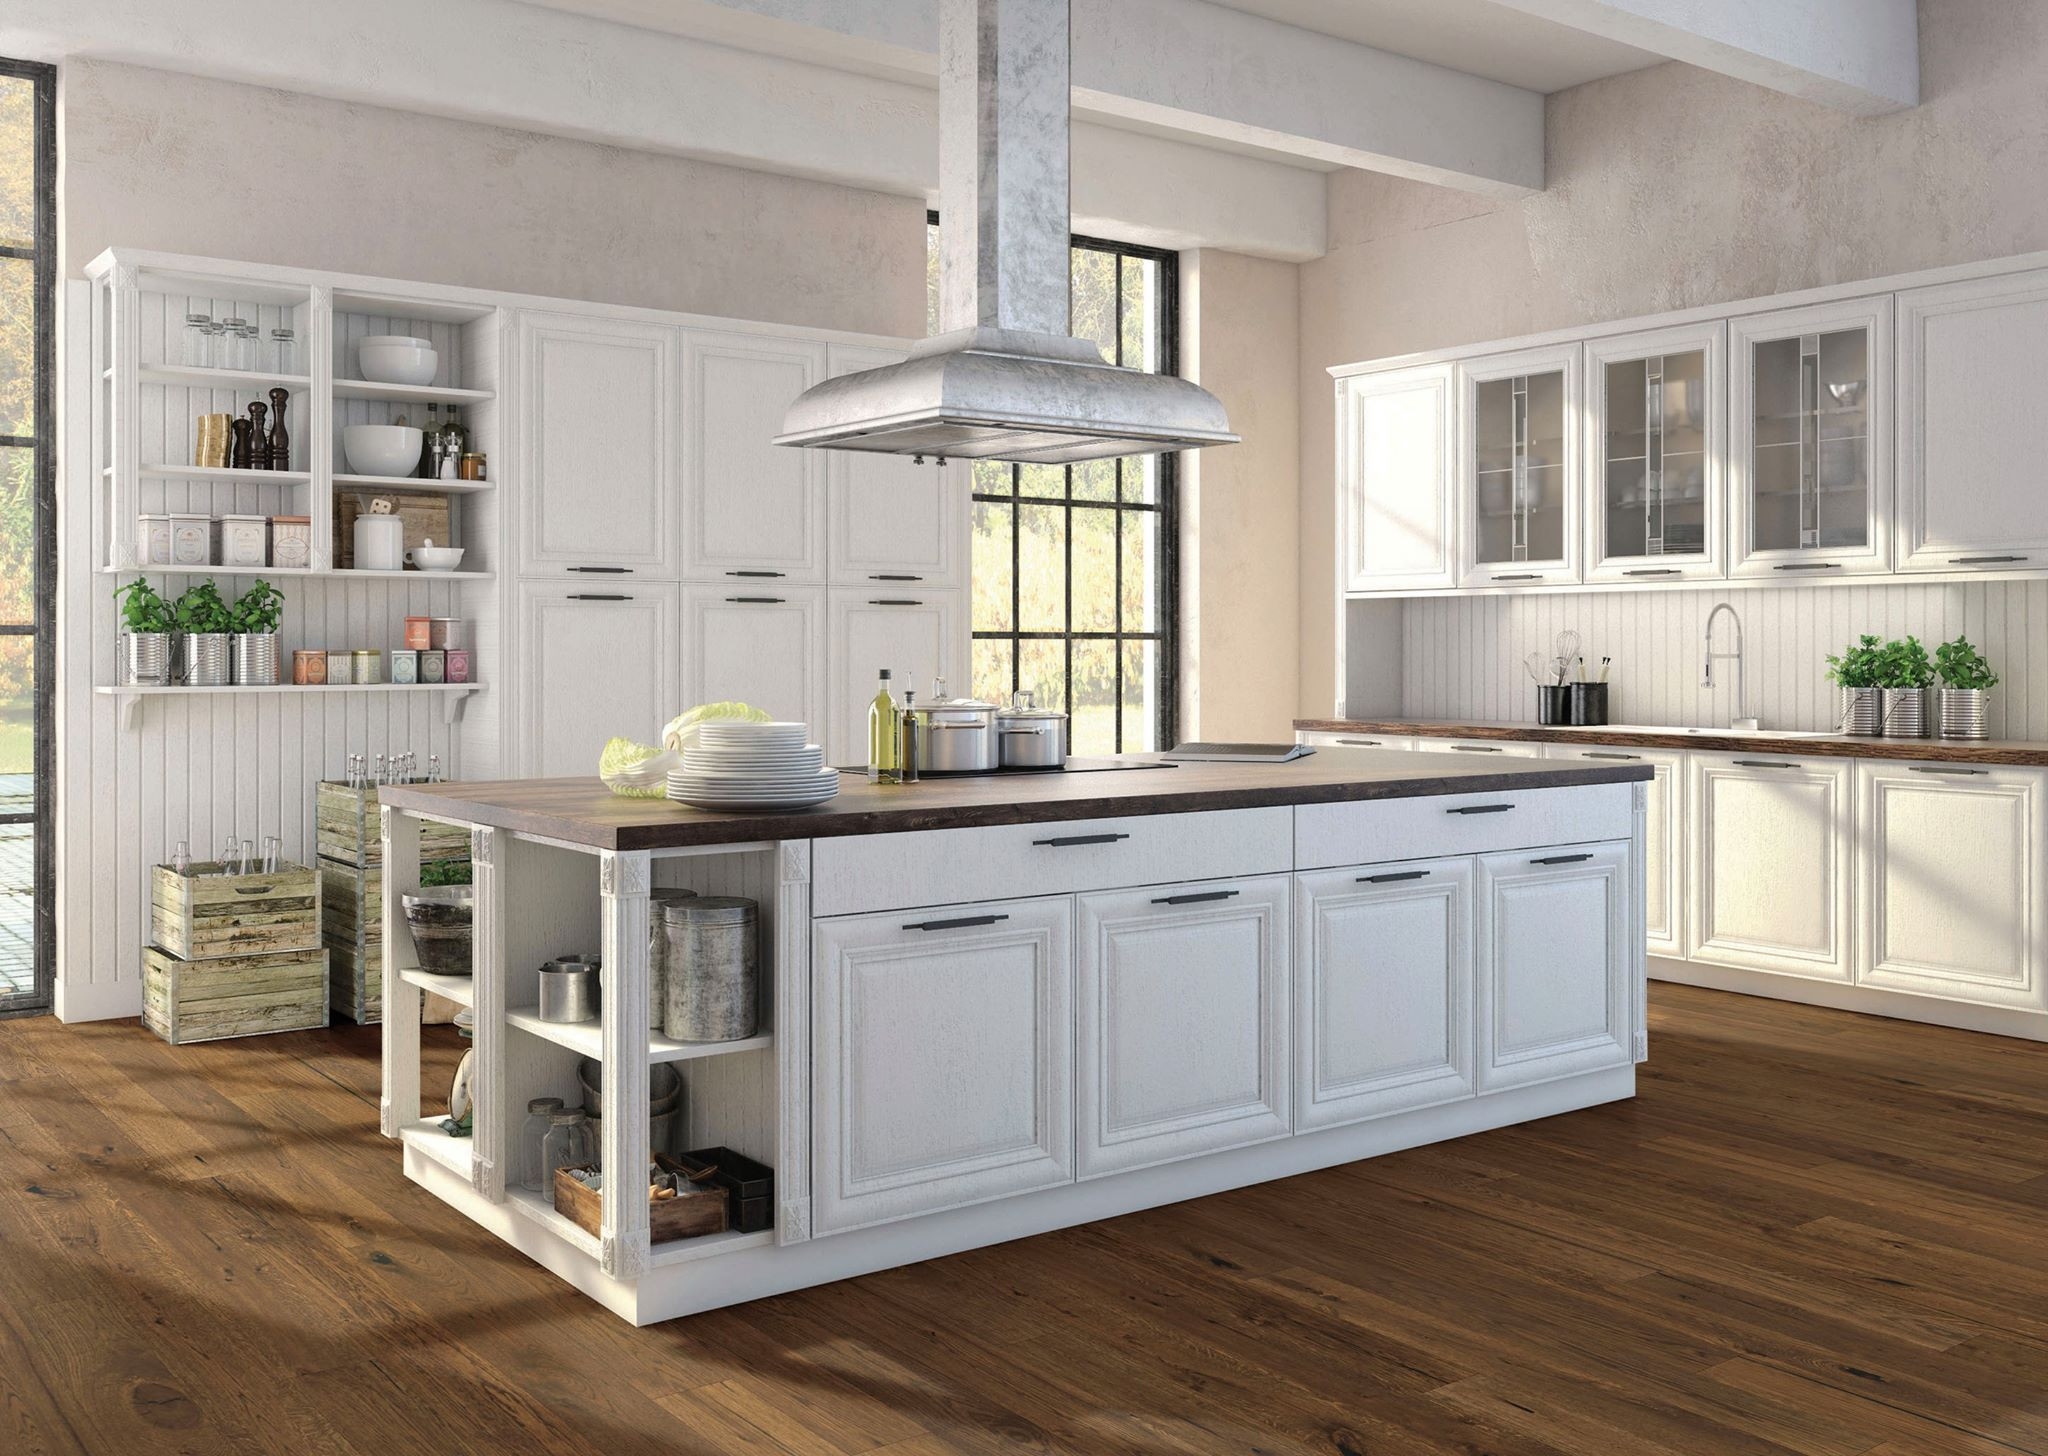 hardwood flooring nj of wood flooring pinterest wood flooring wide plank and kitchens inside warm your kitchen with not only delish food but beautiful hardwood floors